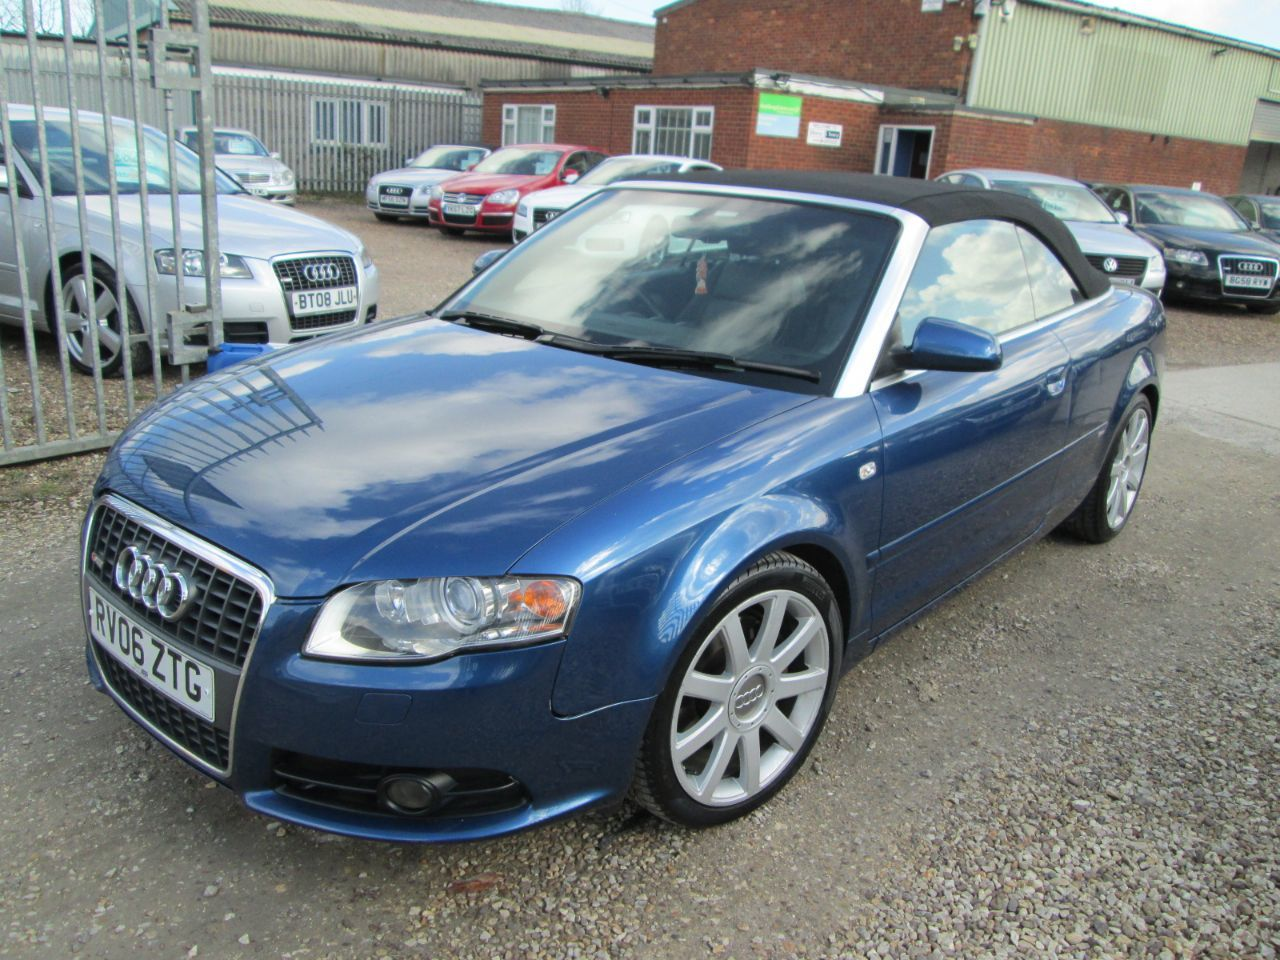 Audi A4 3.0 TDi QUATTRO S LINE TIPTRONIC + FULL BLACK LEATHER + FULL SERVICE HISTORY Convertible Diesel Blue